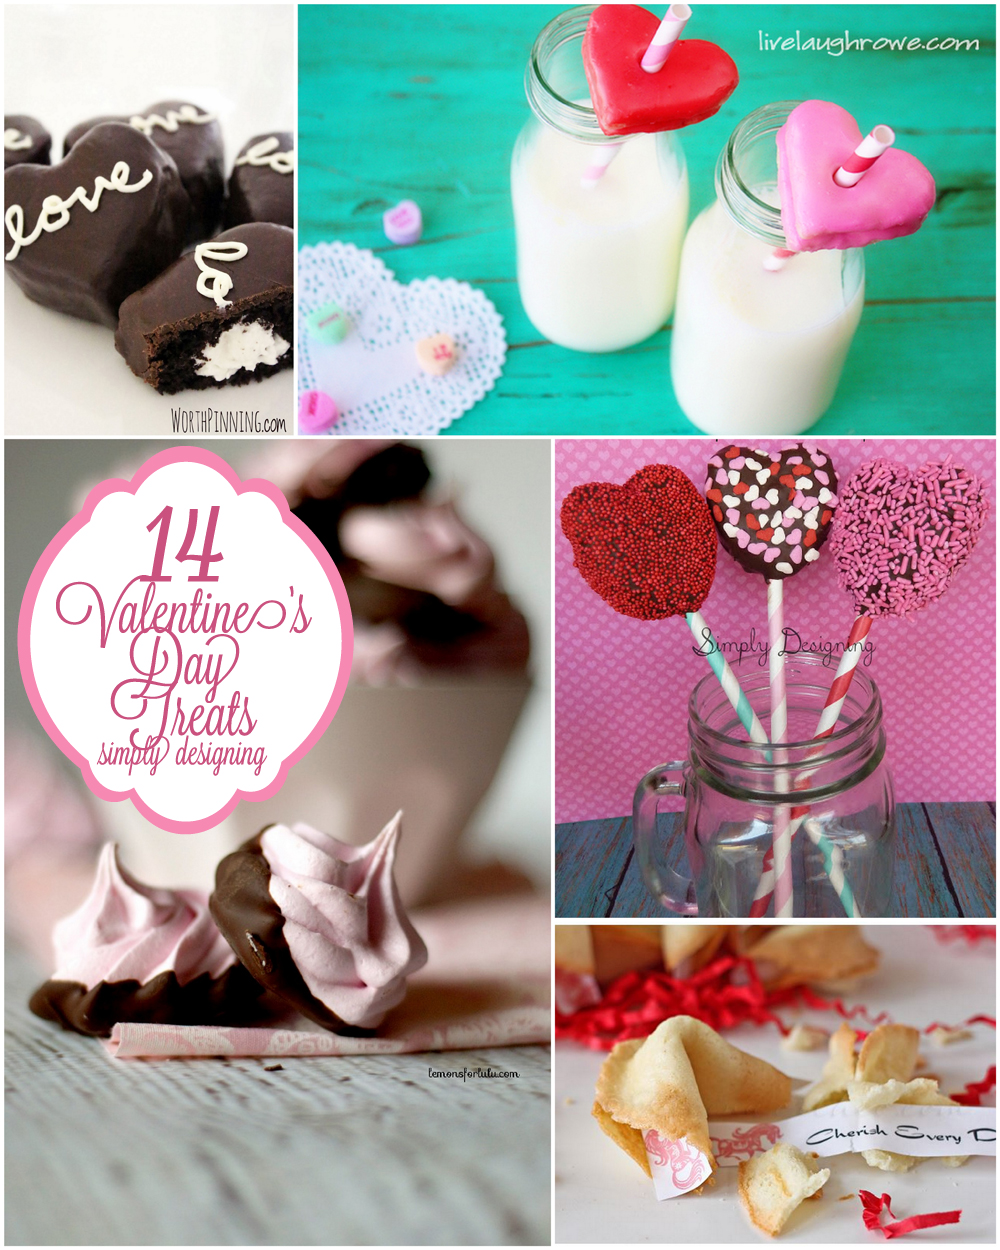 14 Valentine's Day Treats | #valentinesday #vday #recipes